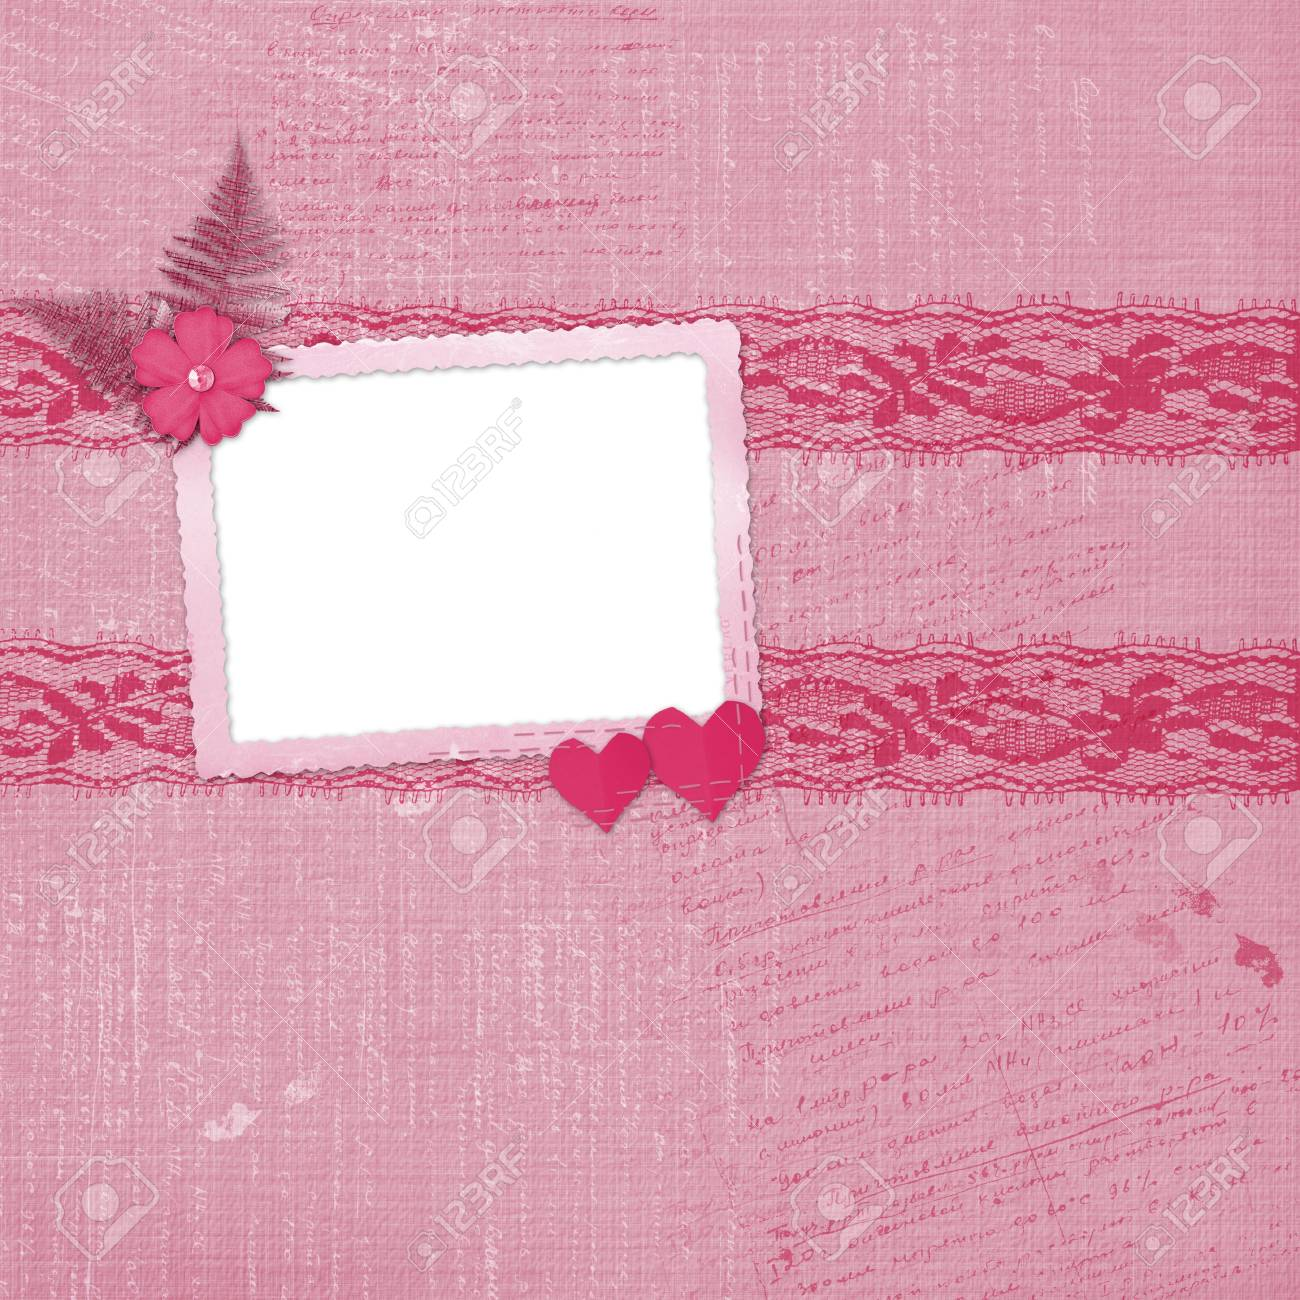 Valentines day card with hearts for congratulation to holiday Stock Photo - 6225854